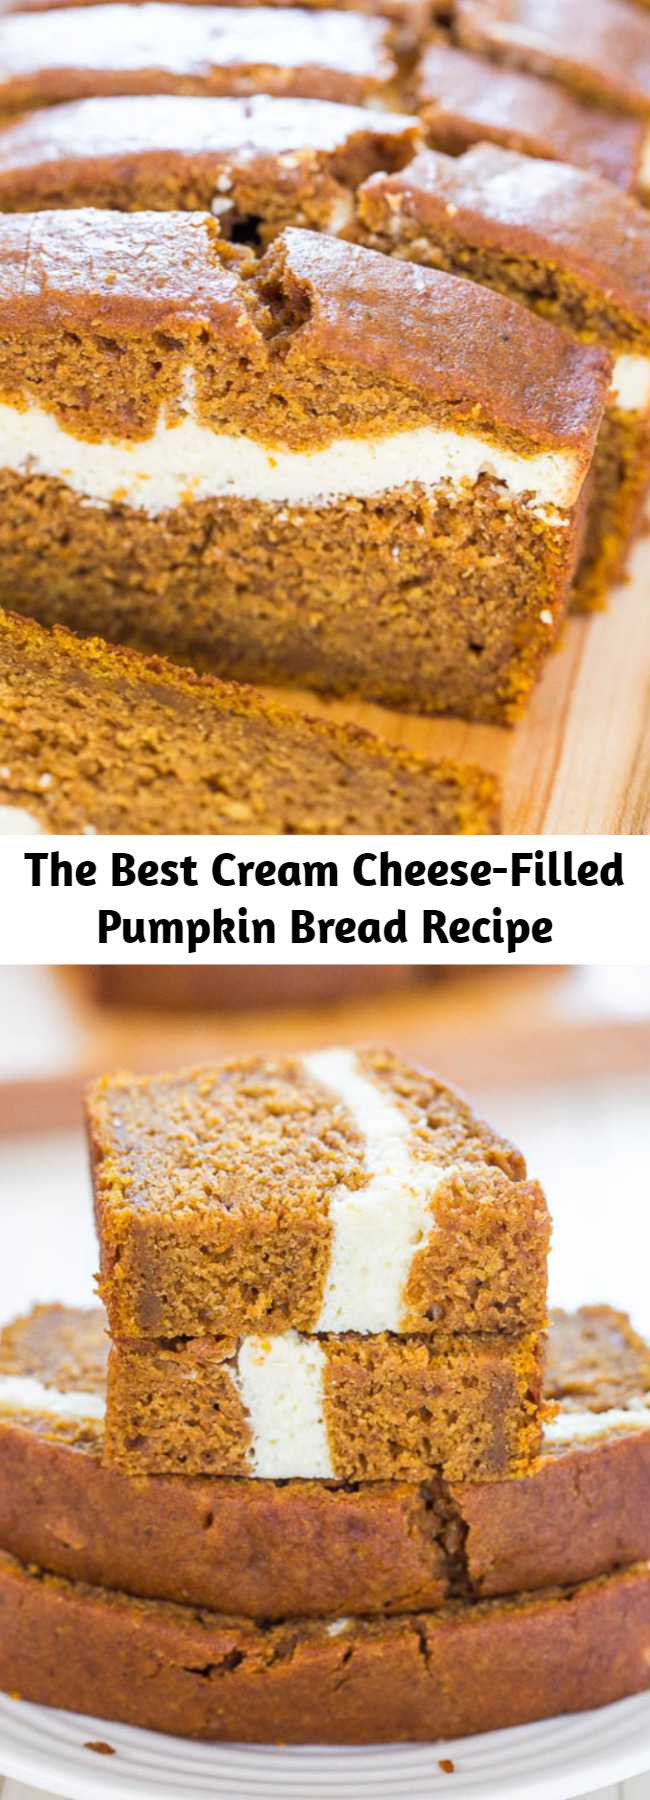 The Best Cream Cheese-Filled Pumpkin Bread Recipe - This is without a doubt the BEST pumpkin bread recipe! This pumpkin cream cheese bread tastes like it has cheesecake baked into the middle. You'll definitely want a second slice! #pumpkindesserts #pumpkinrecipes